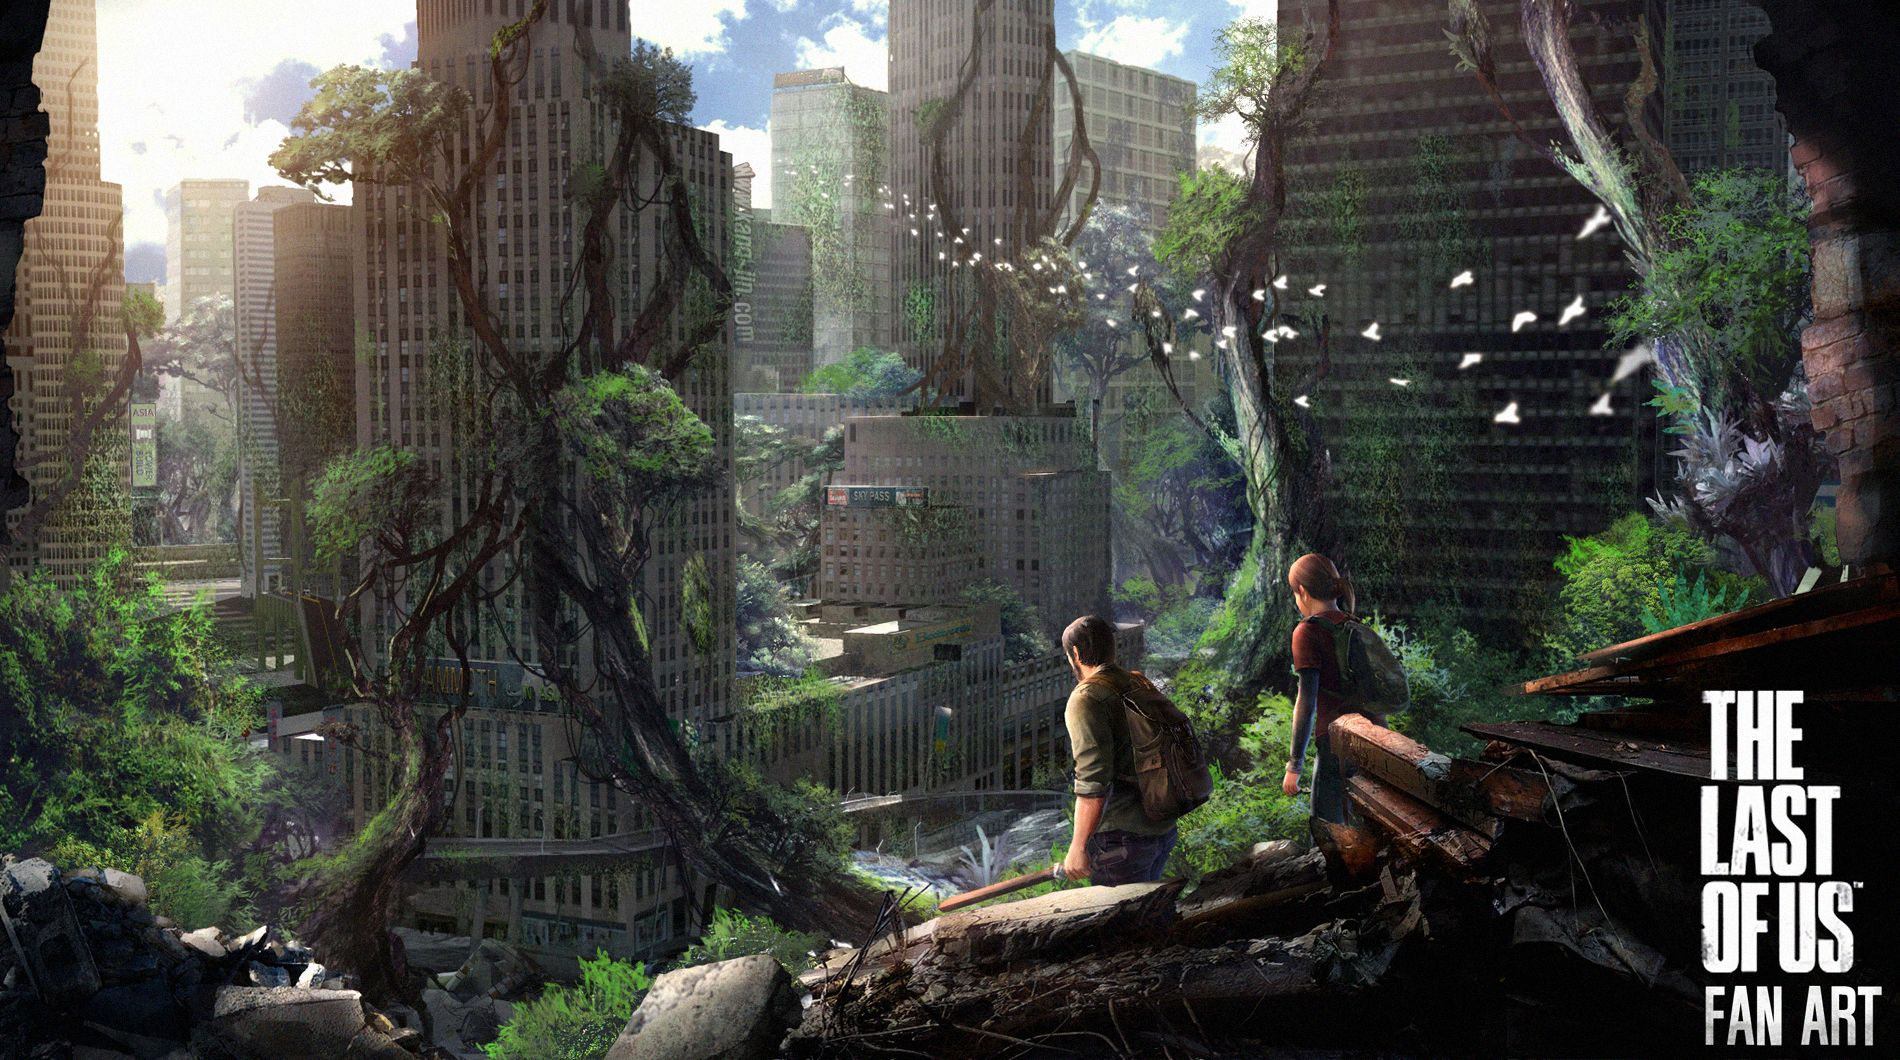 The Last Of Us Concept Art Wallpaper Google Search